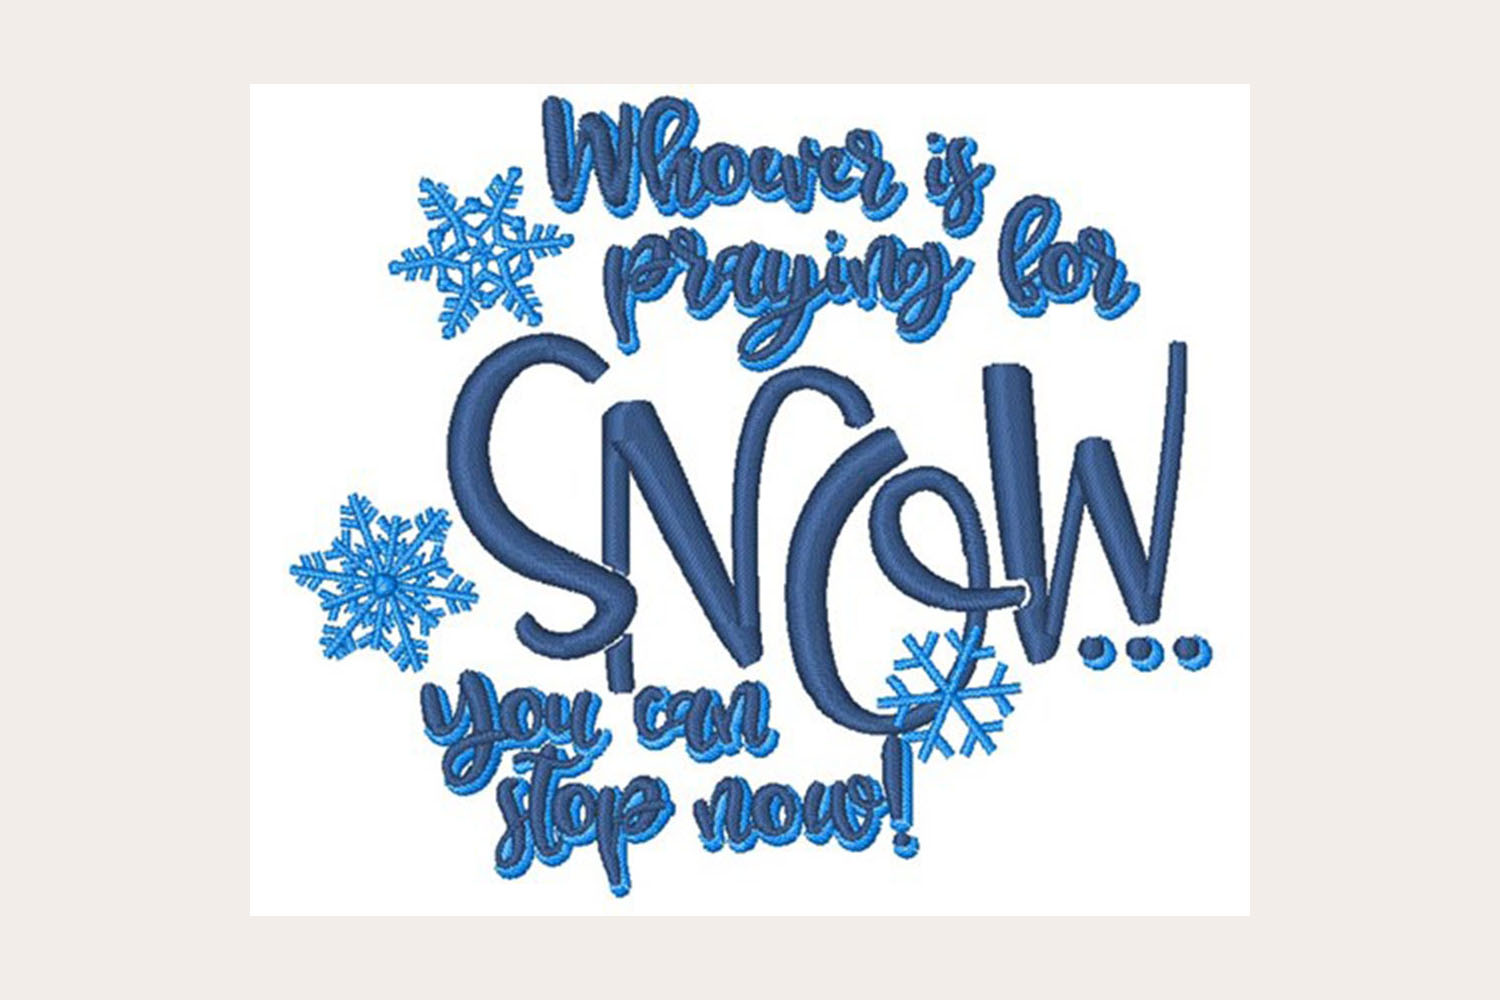 Praying For Snow -Machine Embroidery Design example image 1